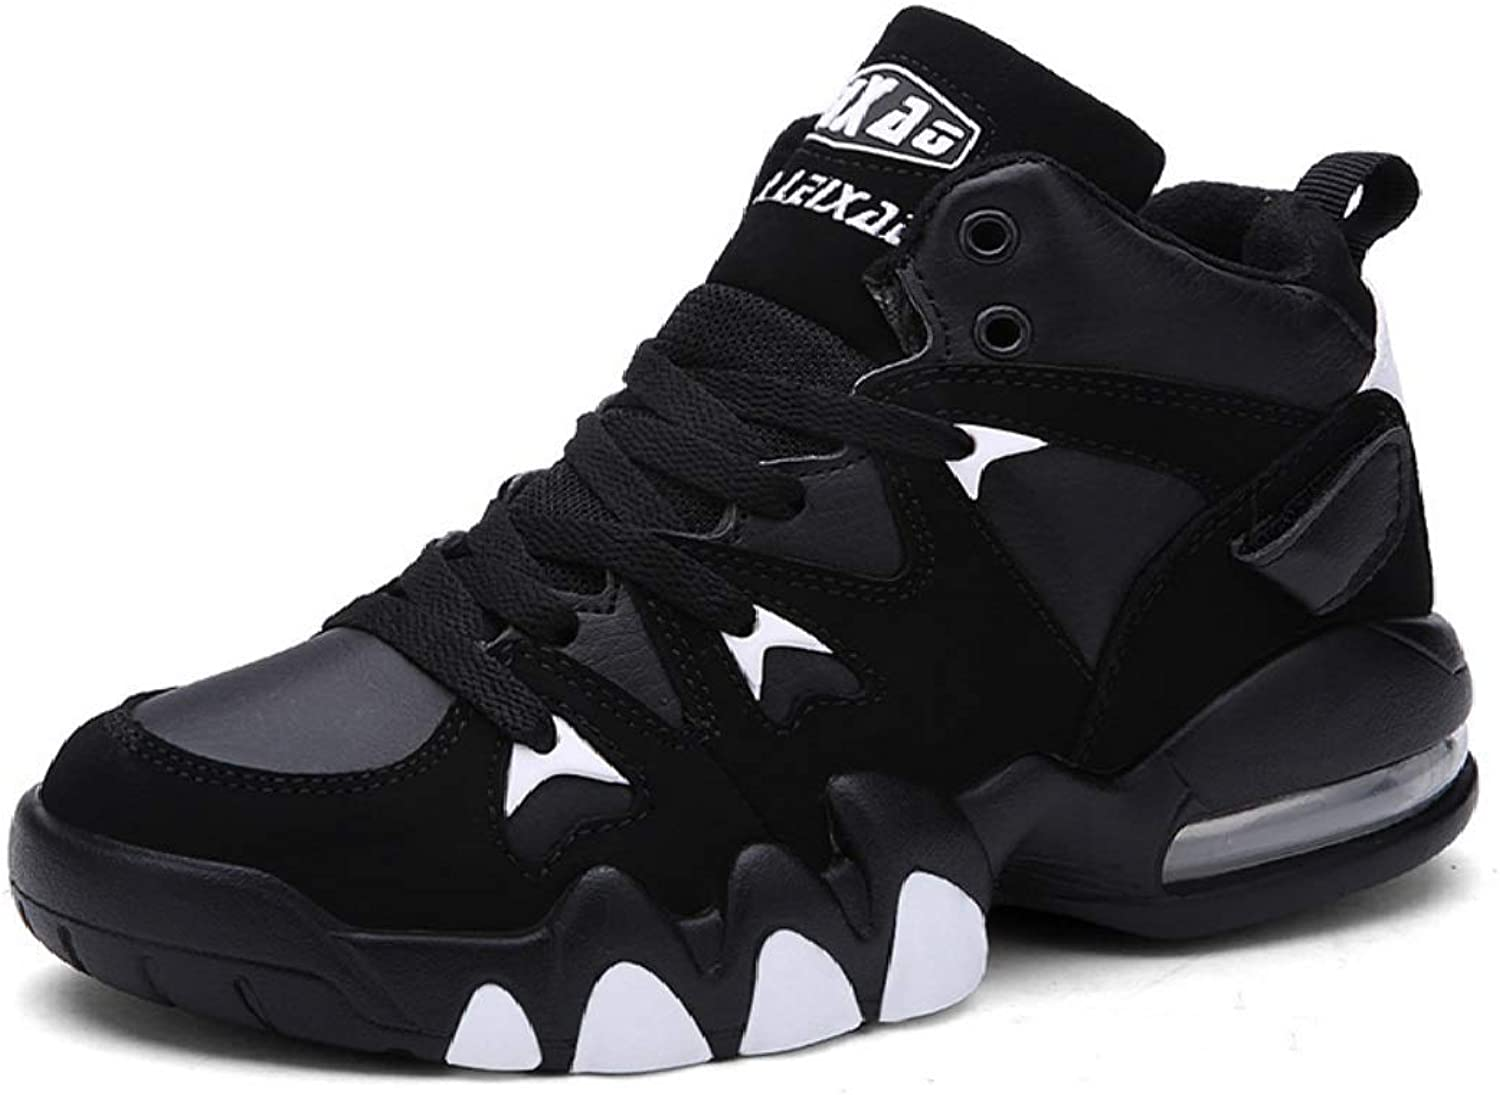 MON5F HOME Men's Anti-fall Basketball shoes Air Cushion Damping Men's And Women's Trend Warm And Cotton Breathable Couples Warm Snow Boots (color   Black plus velvet, Size   45)